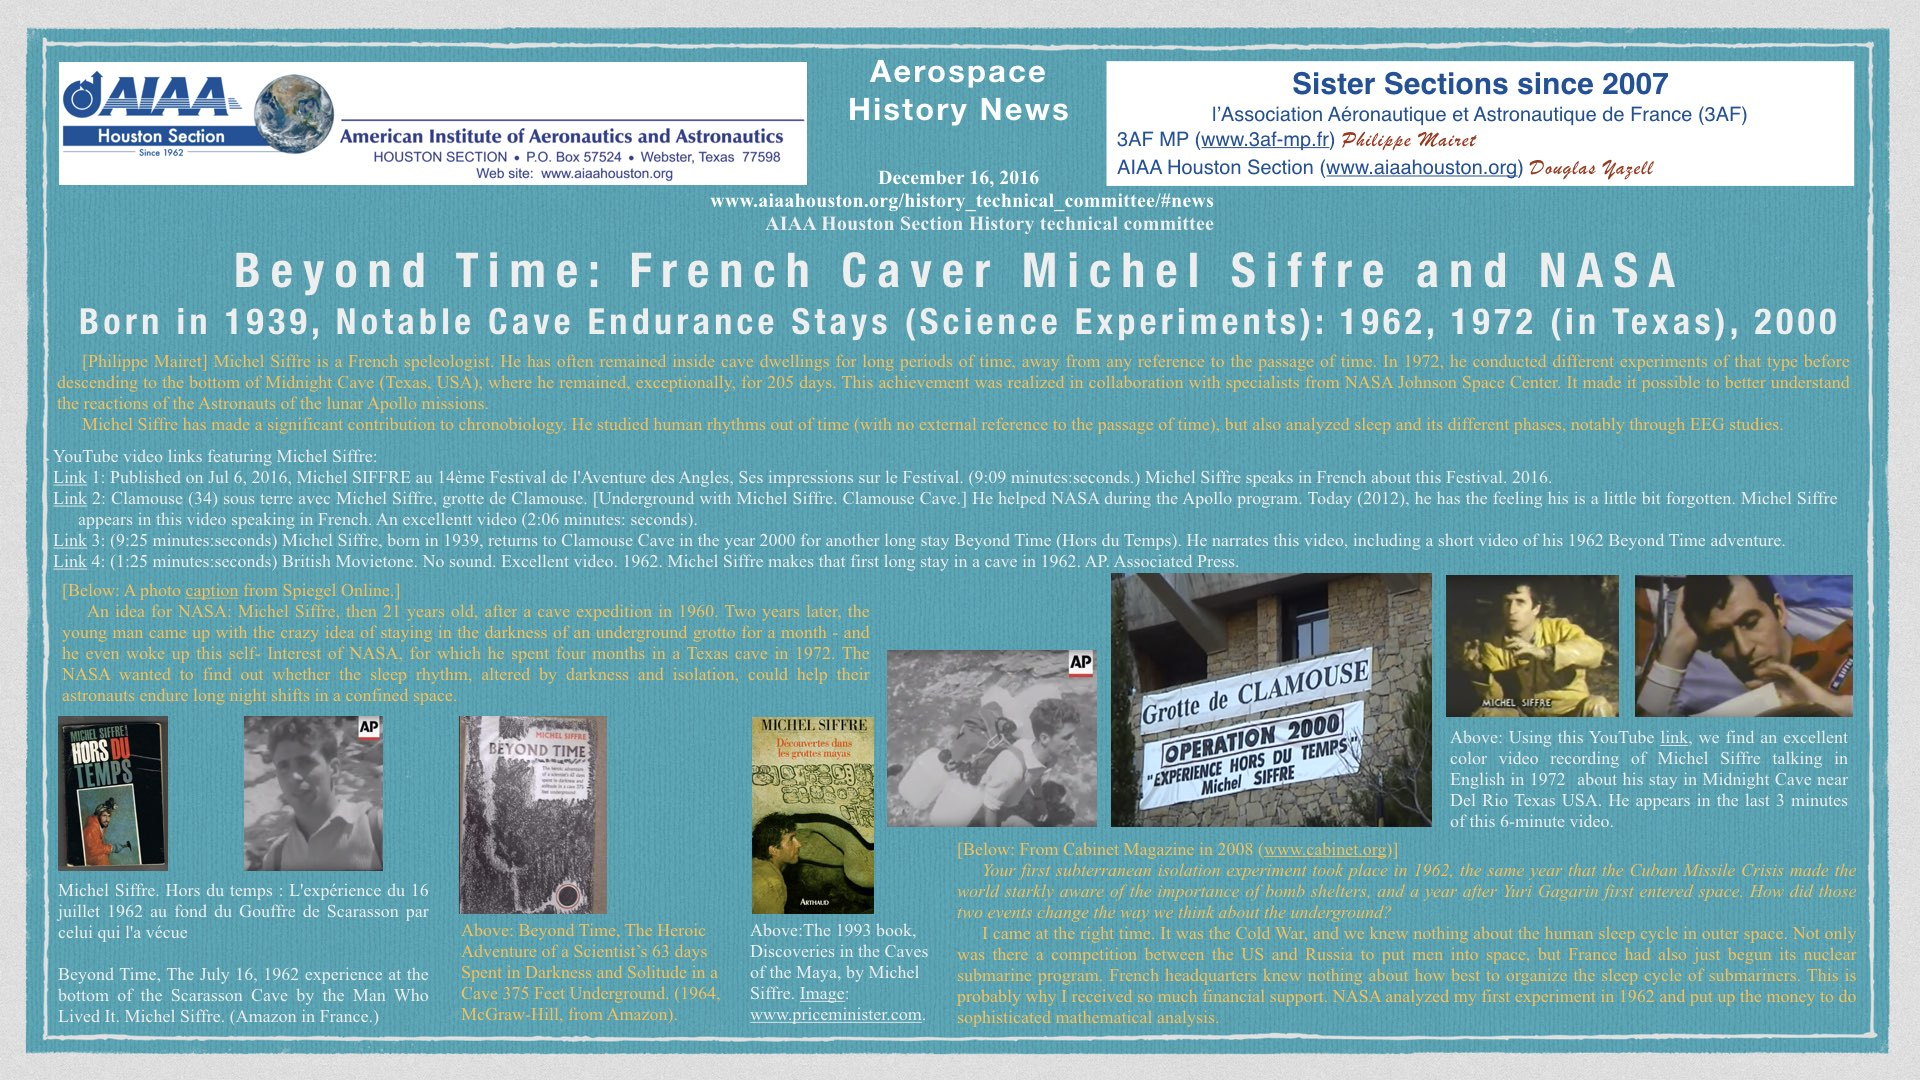 Above: Beyond Time: French Caver Michel Siffre and NASA: Born in 1939, Notable Cave Endurance Stays (Science Experiments): 1962, 1972 (in Texas), 2000. (Click to zoom.)